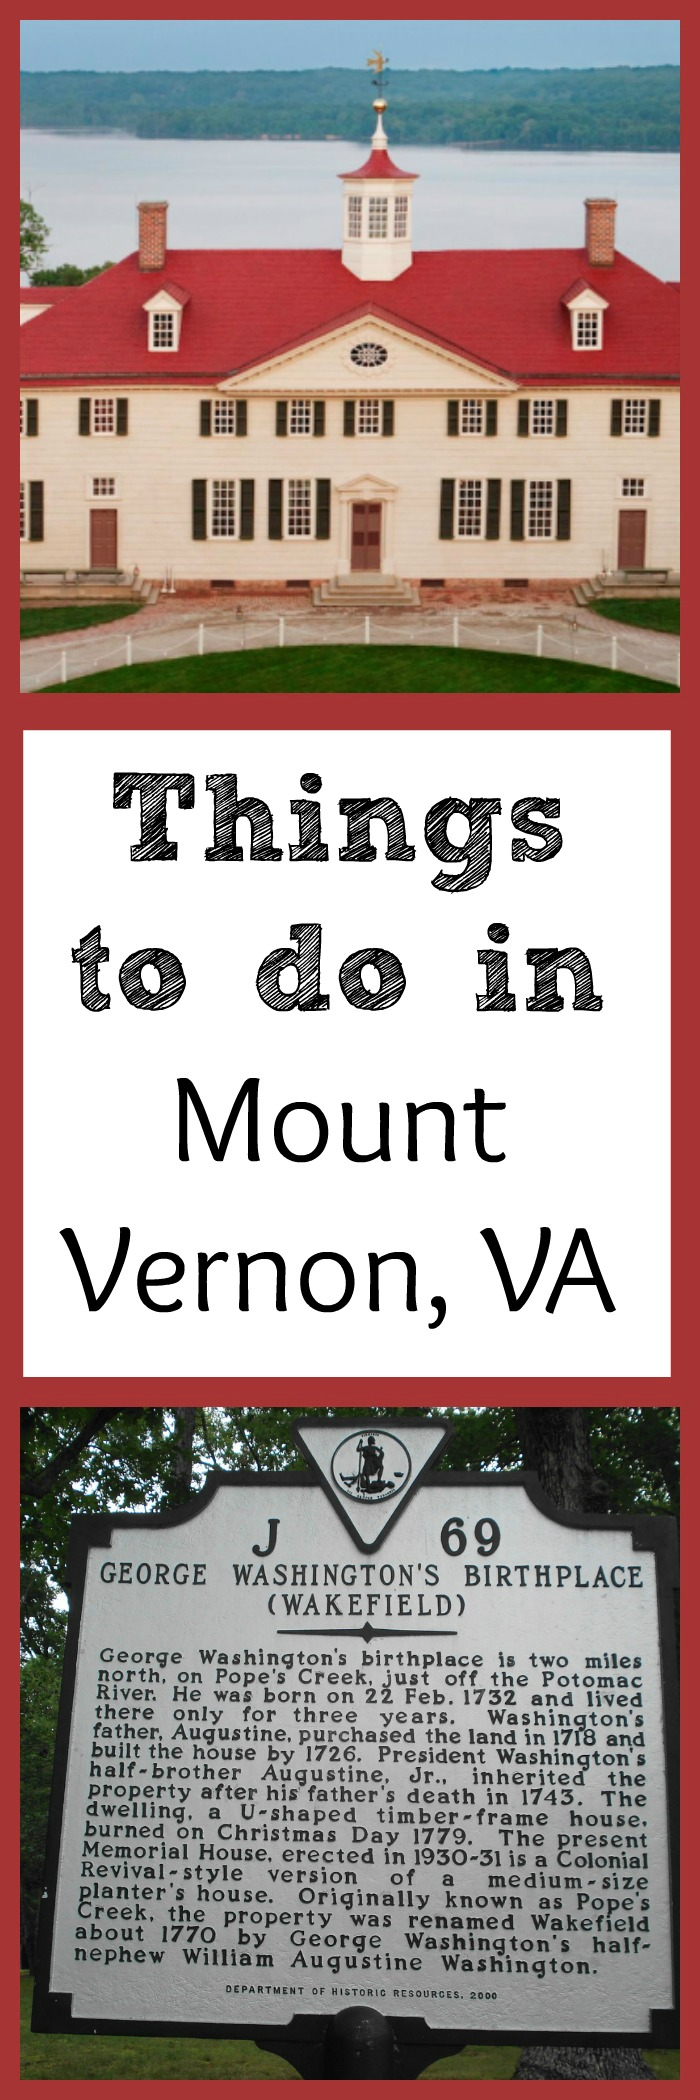 Looking for things to do in Mount Vernon, Virginia? After visiting George Washington's home, check out these other fun things to do in Mount Vernon, Virginia.